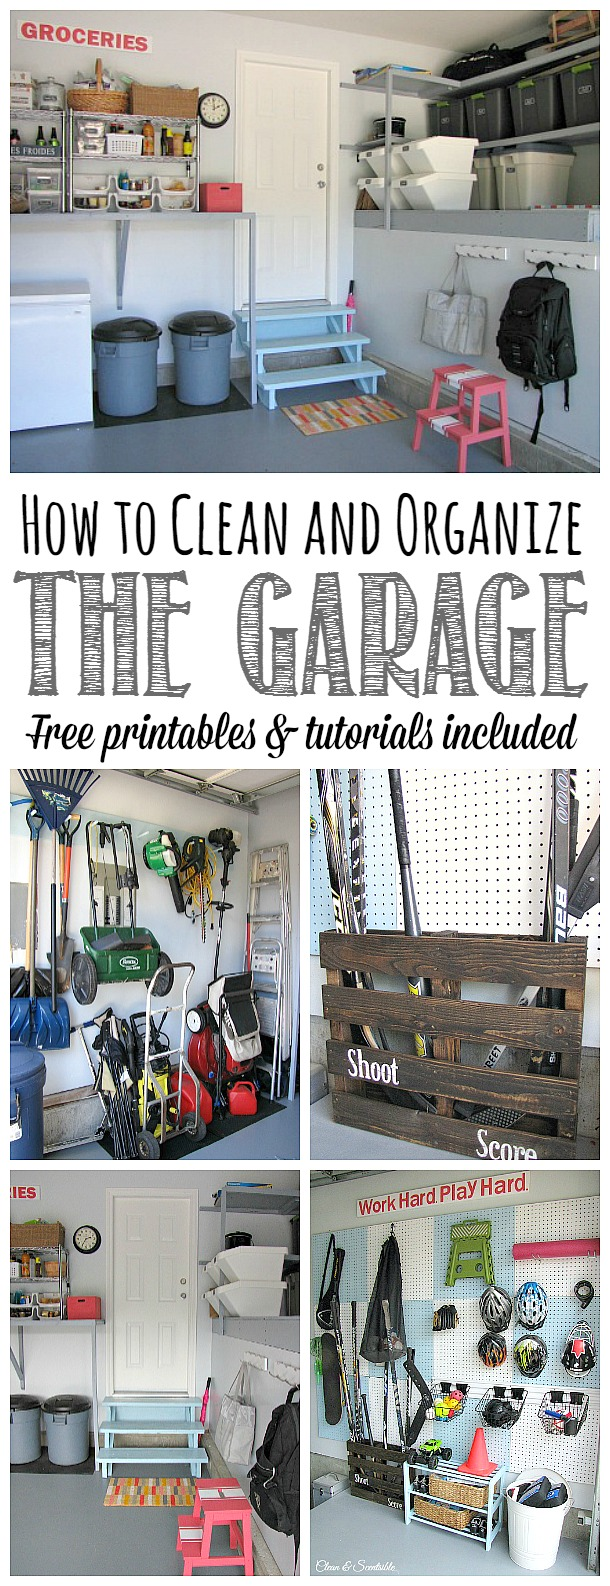 How To Organize The Garage  Clean And Scentsible